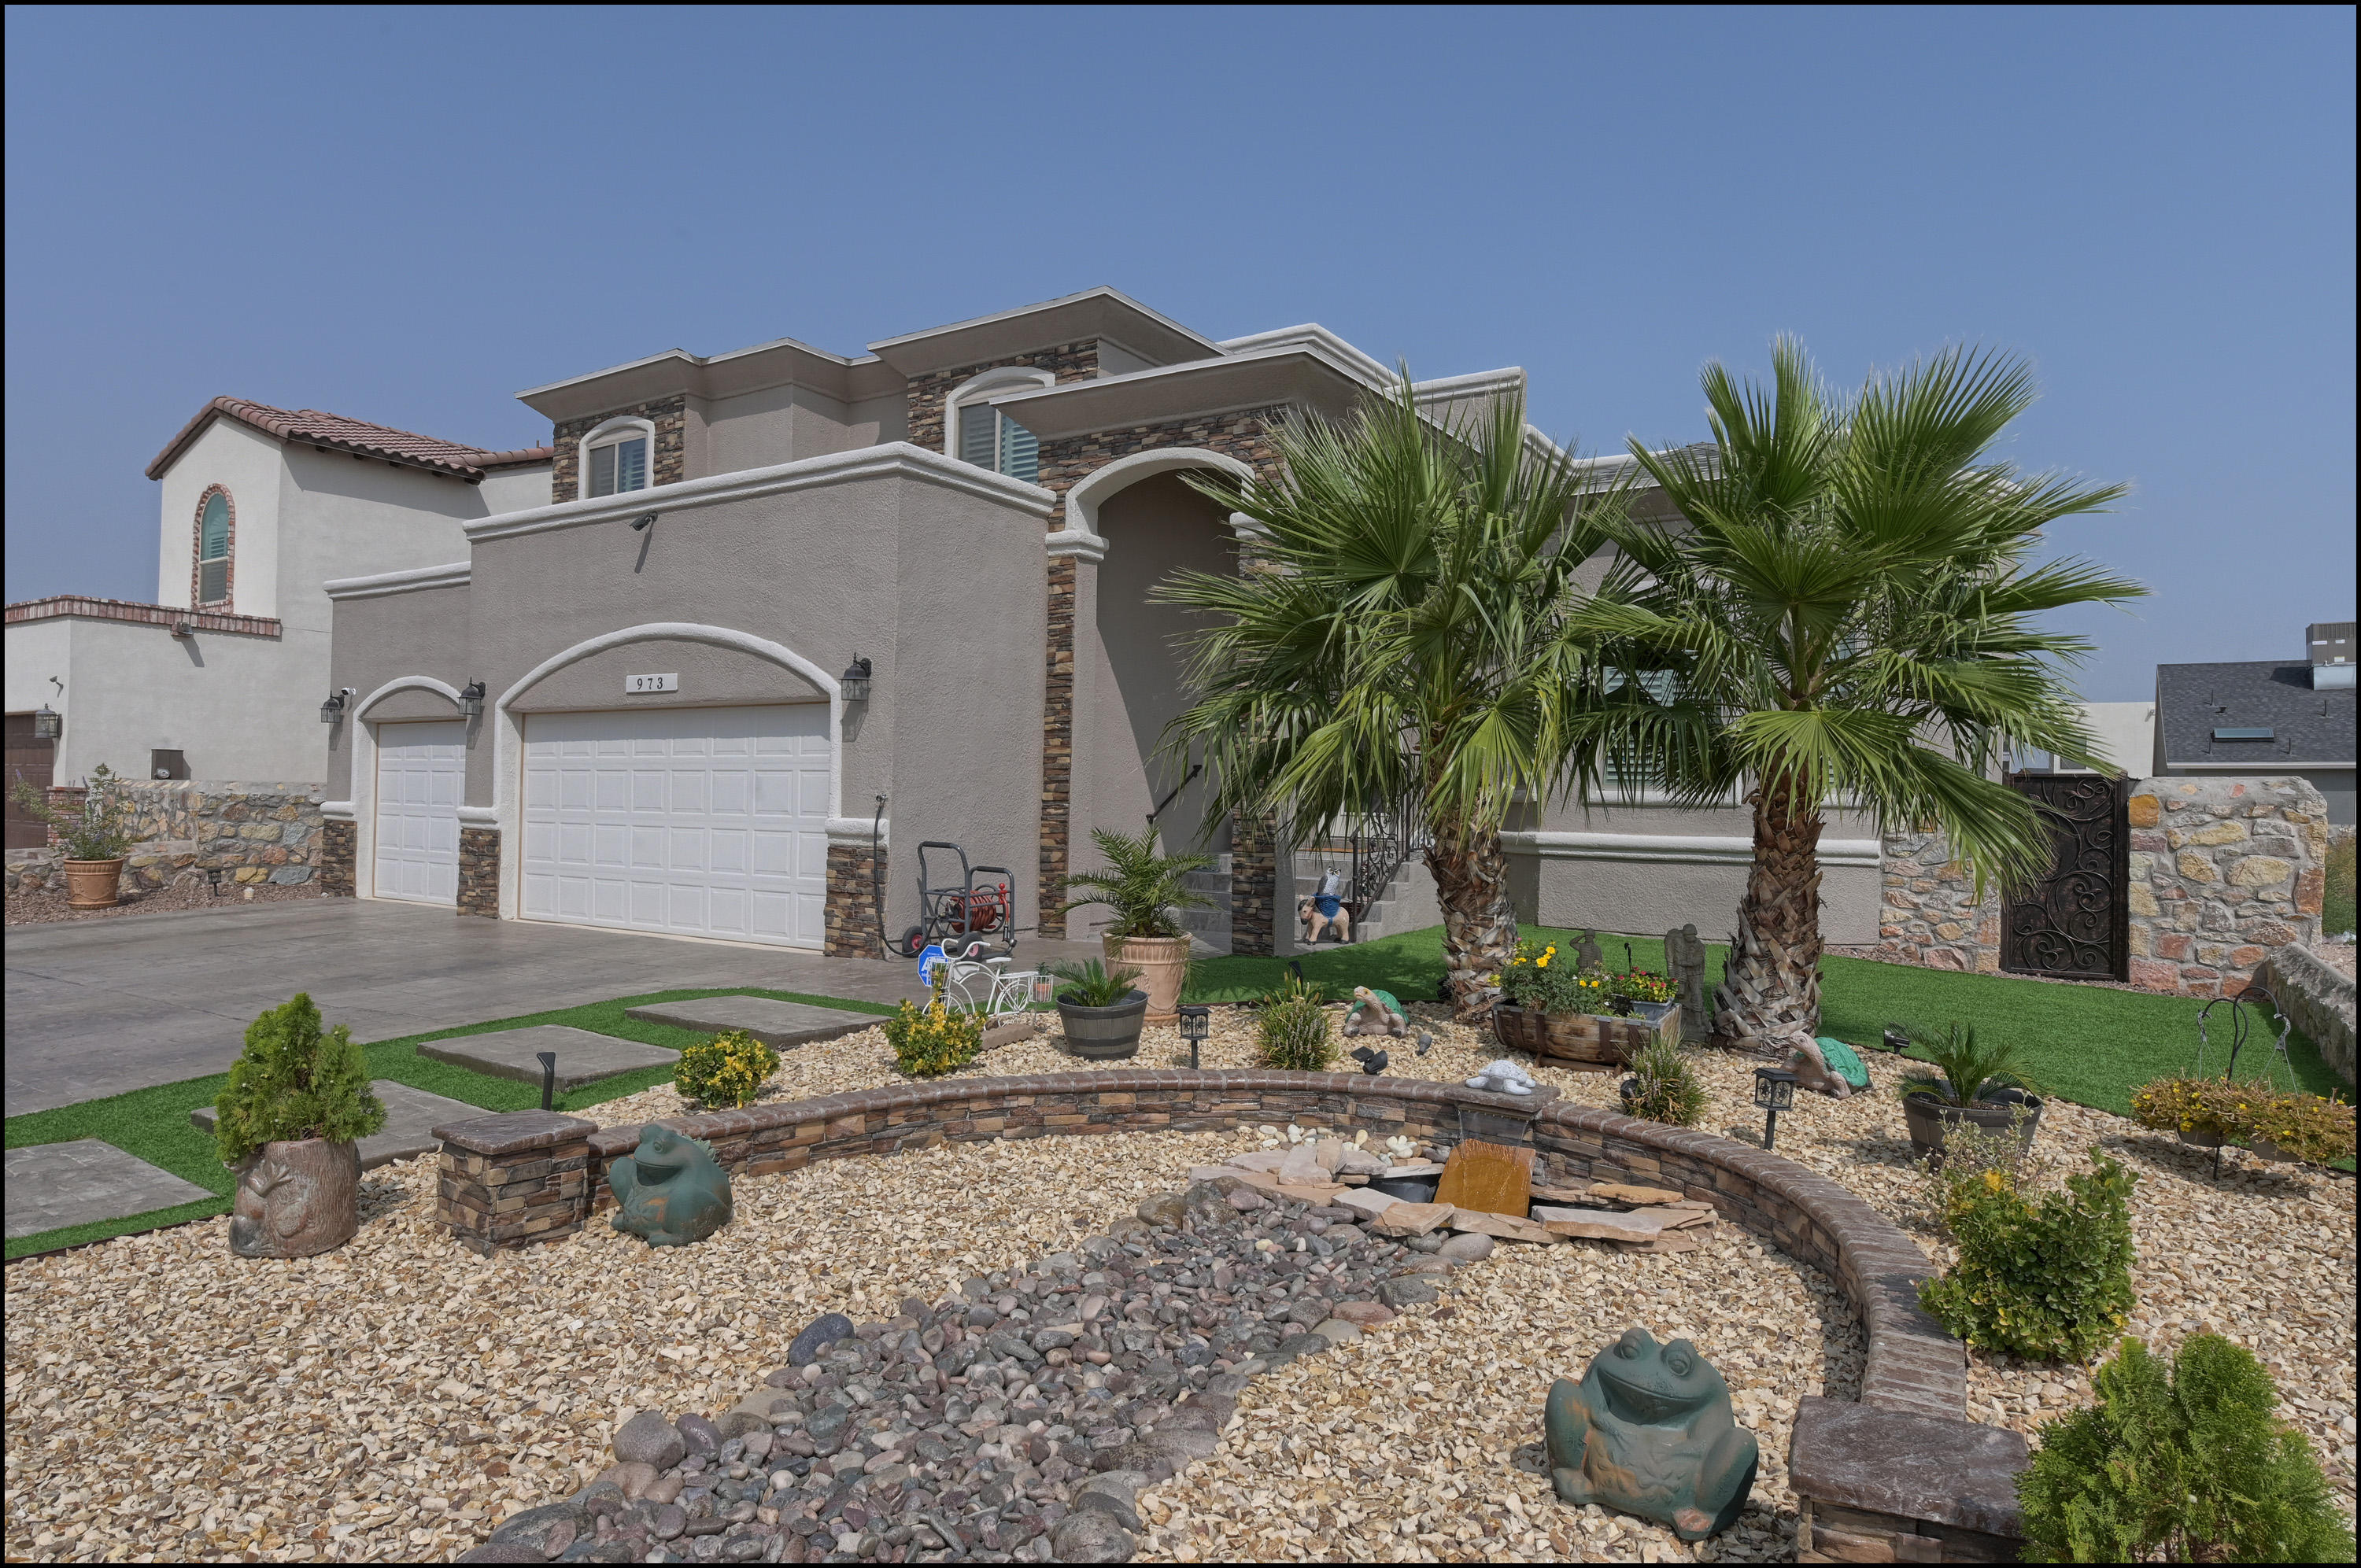 973 ABE GOLDBERG, El Paso, Texas 79932, 4 Bedrooms Bedrooms, ,3 BathroomsBathrooms,Residential,For sale,ABE GOLDBERG,834377